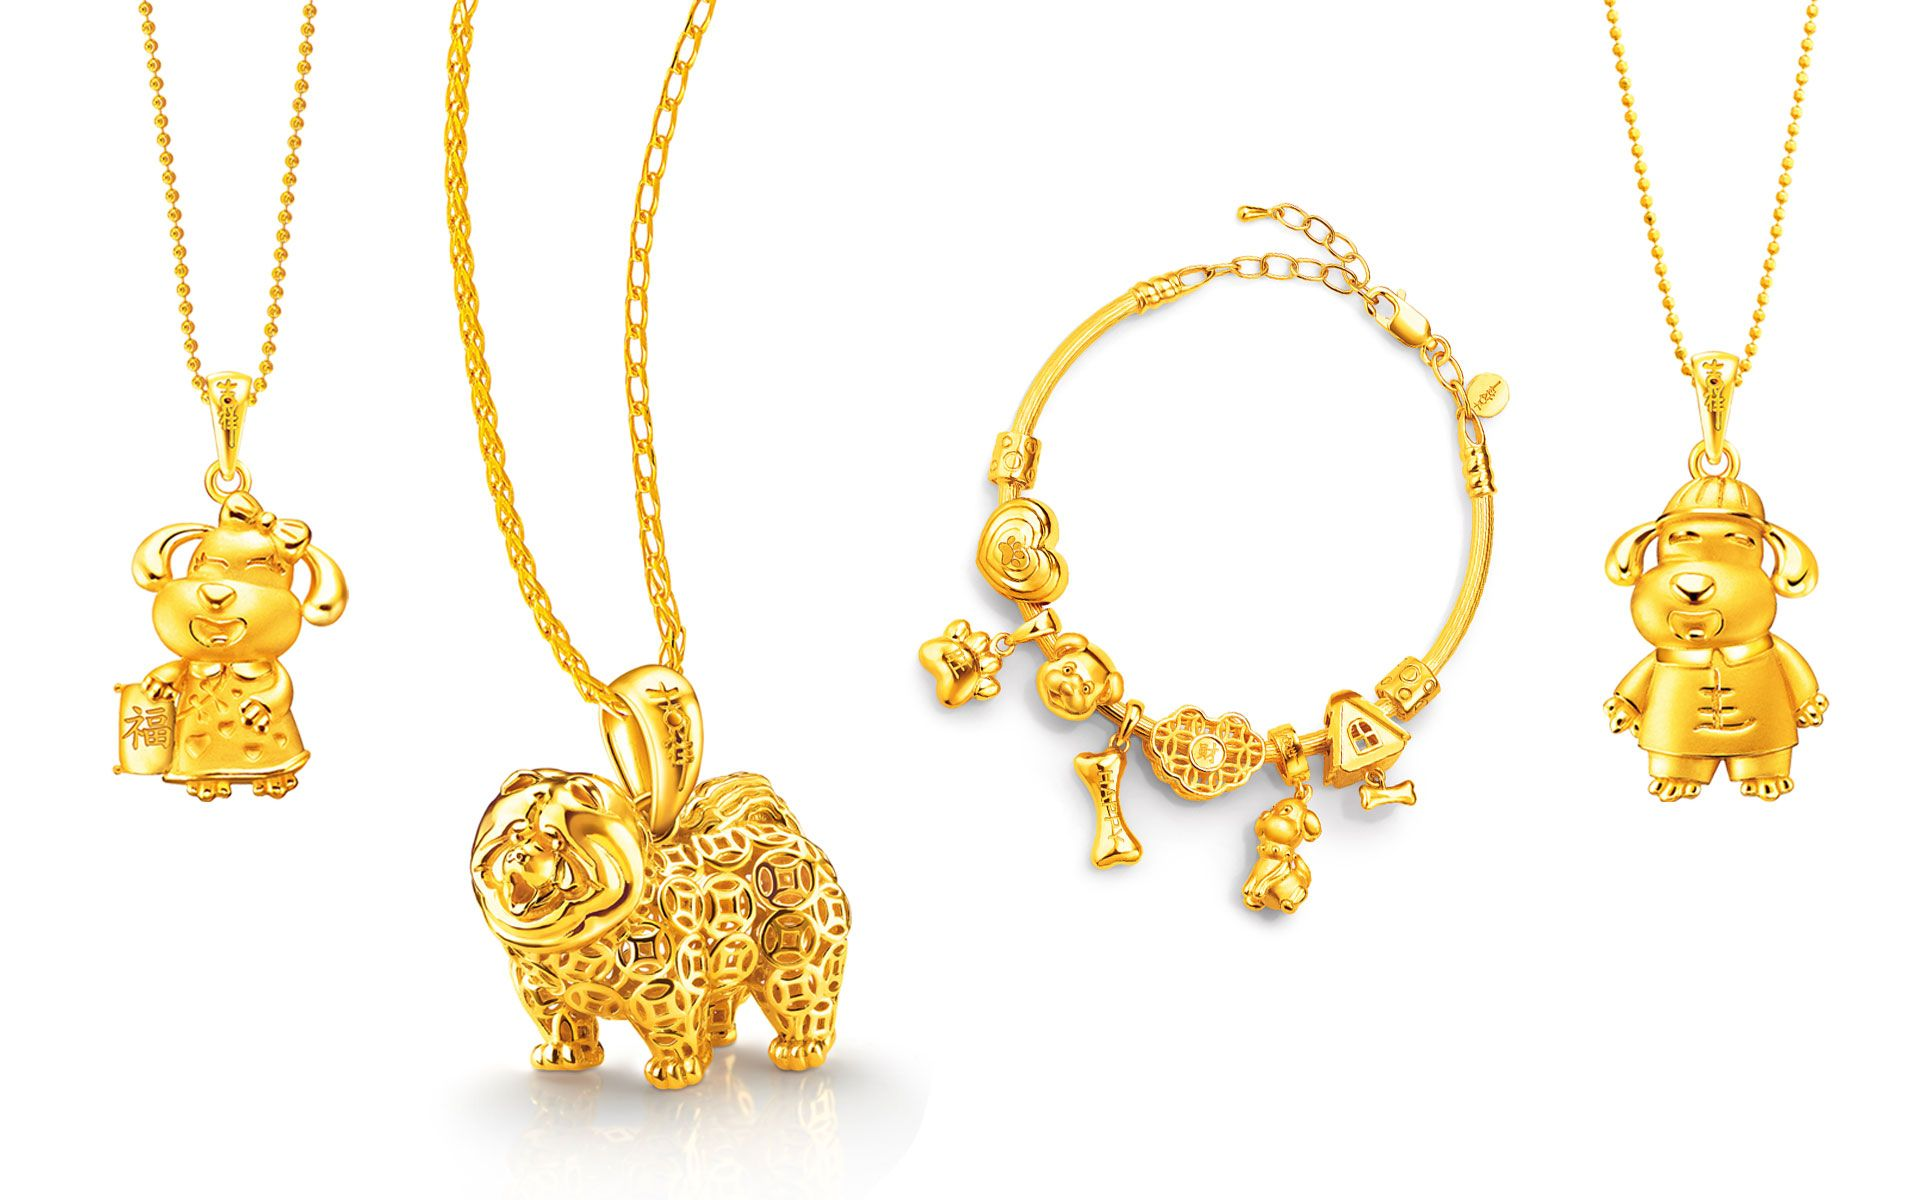 6 Chinese New Year Collections To Get Stylish Canine-Themed Bling ...